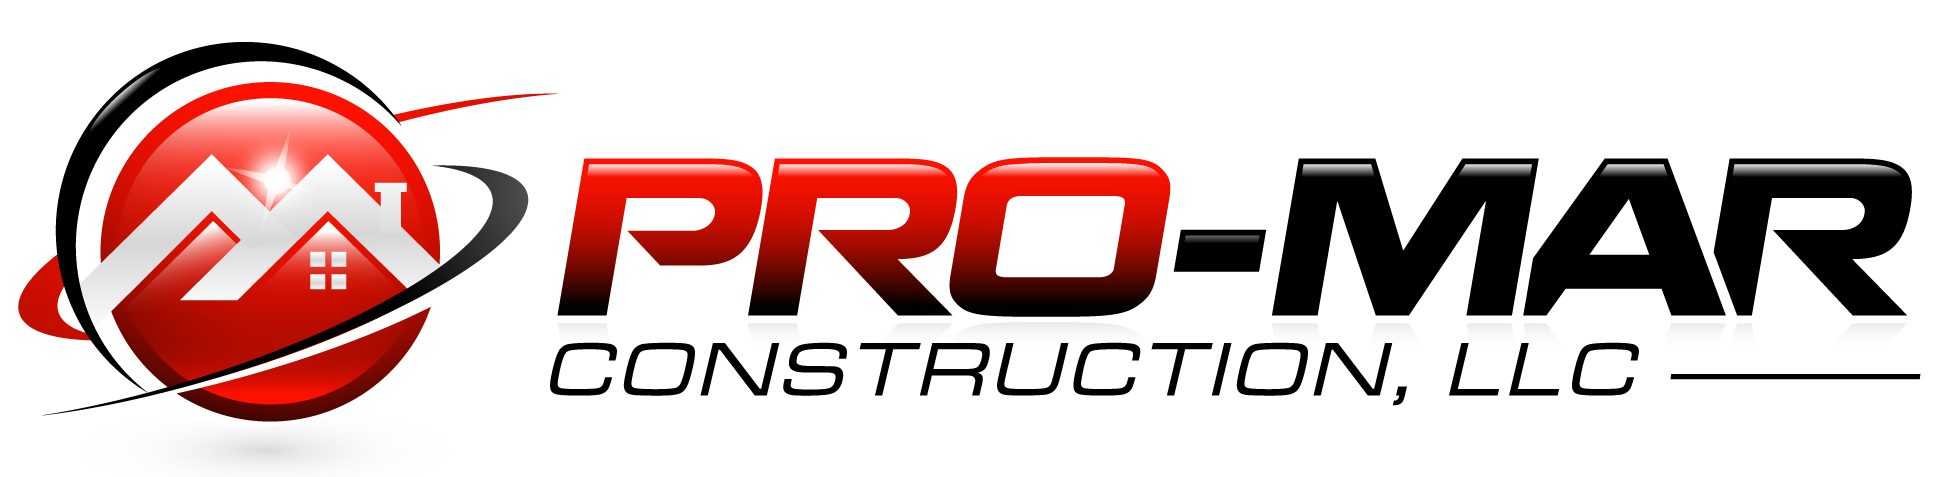 Pro Mar Construction Aiken